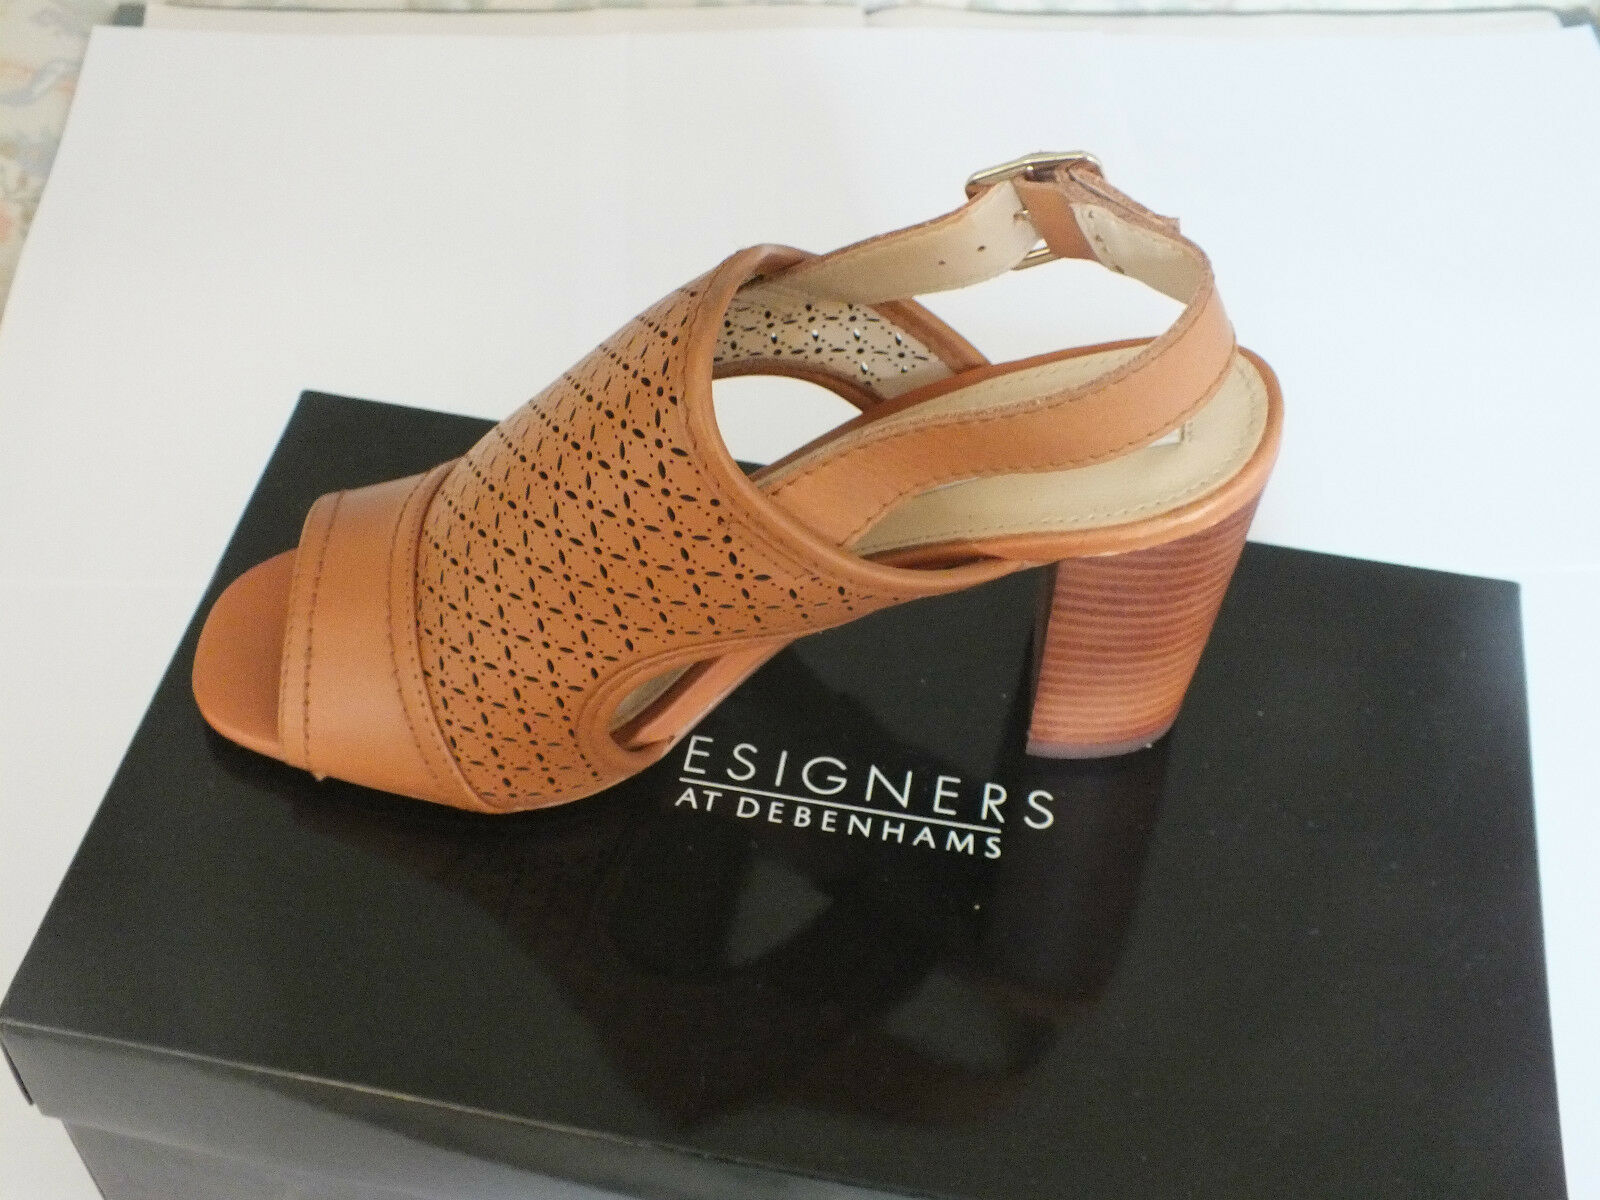 Summer Sandals - Open Toe High Heel  - Woman's - Tan      New   Free P & P